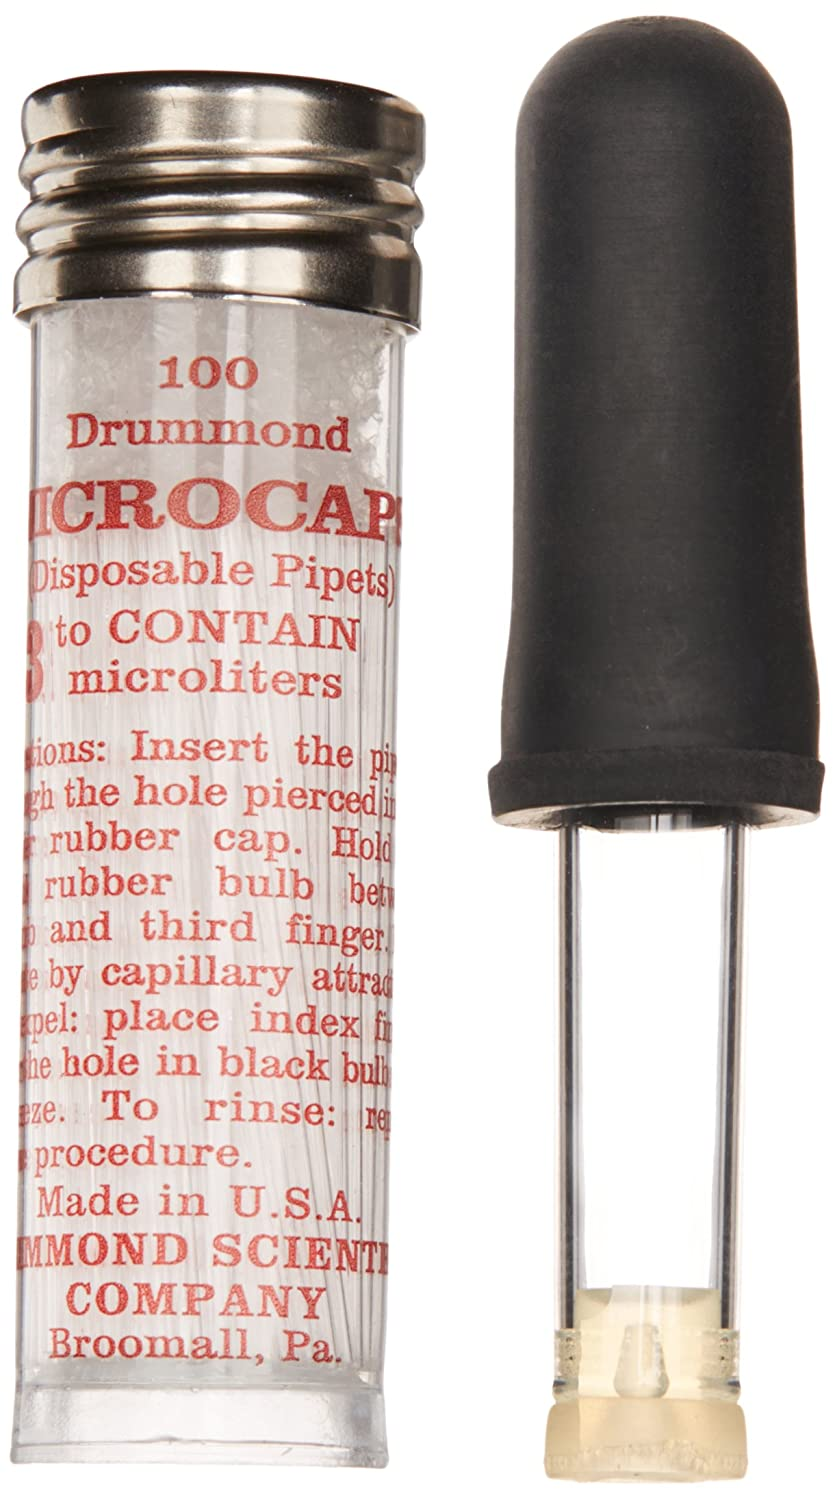 Drummond Scientific Microcap 1-000-0030 Microliter Pipets, 3µL Capacity (Pack of 100)